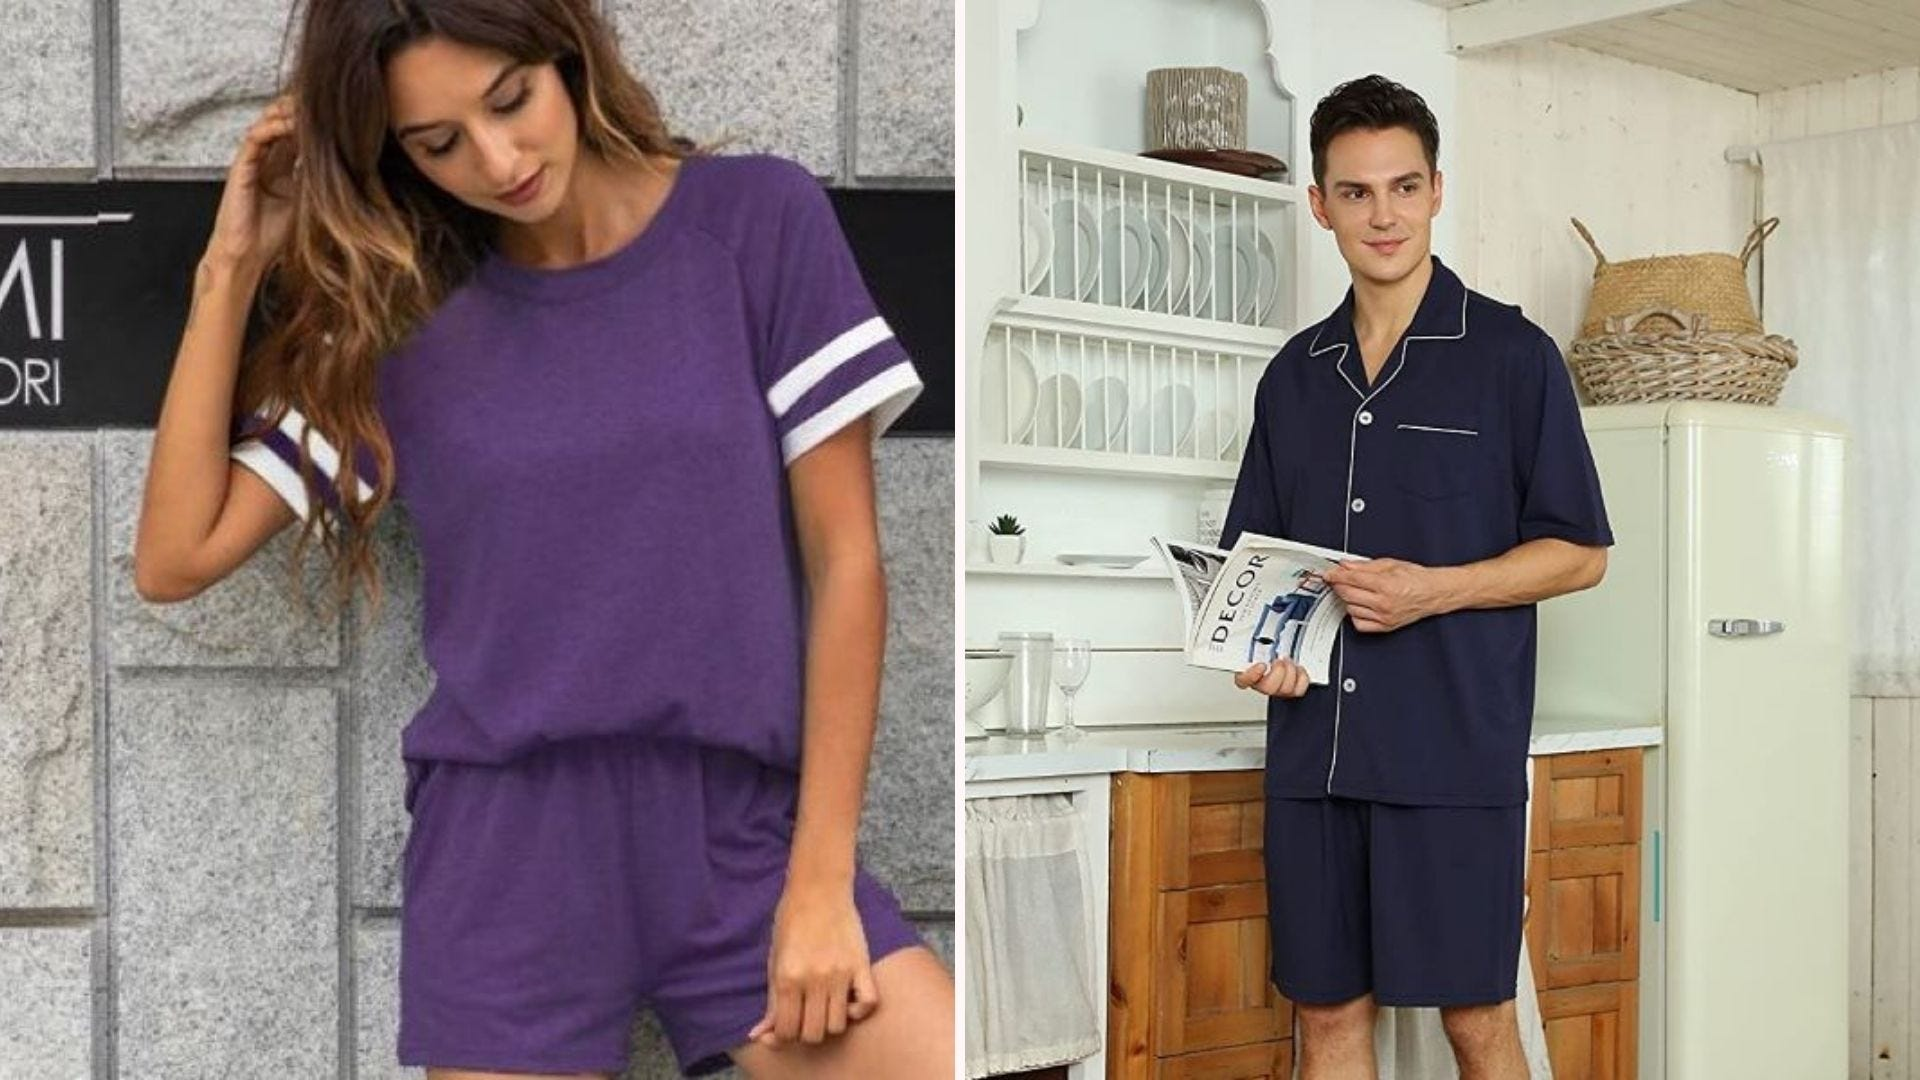 A woman wearing the LOLLO VITA Lounge Set in purple, and a man wearing navy blue U2SKIIN pajamas while holding a magazine in a kitchen.